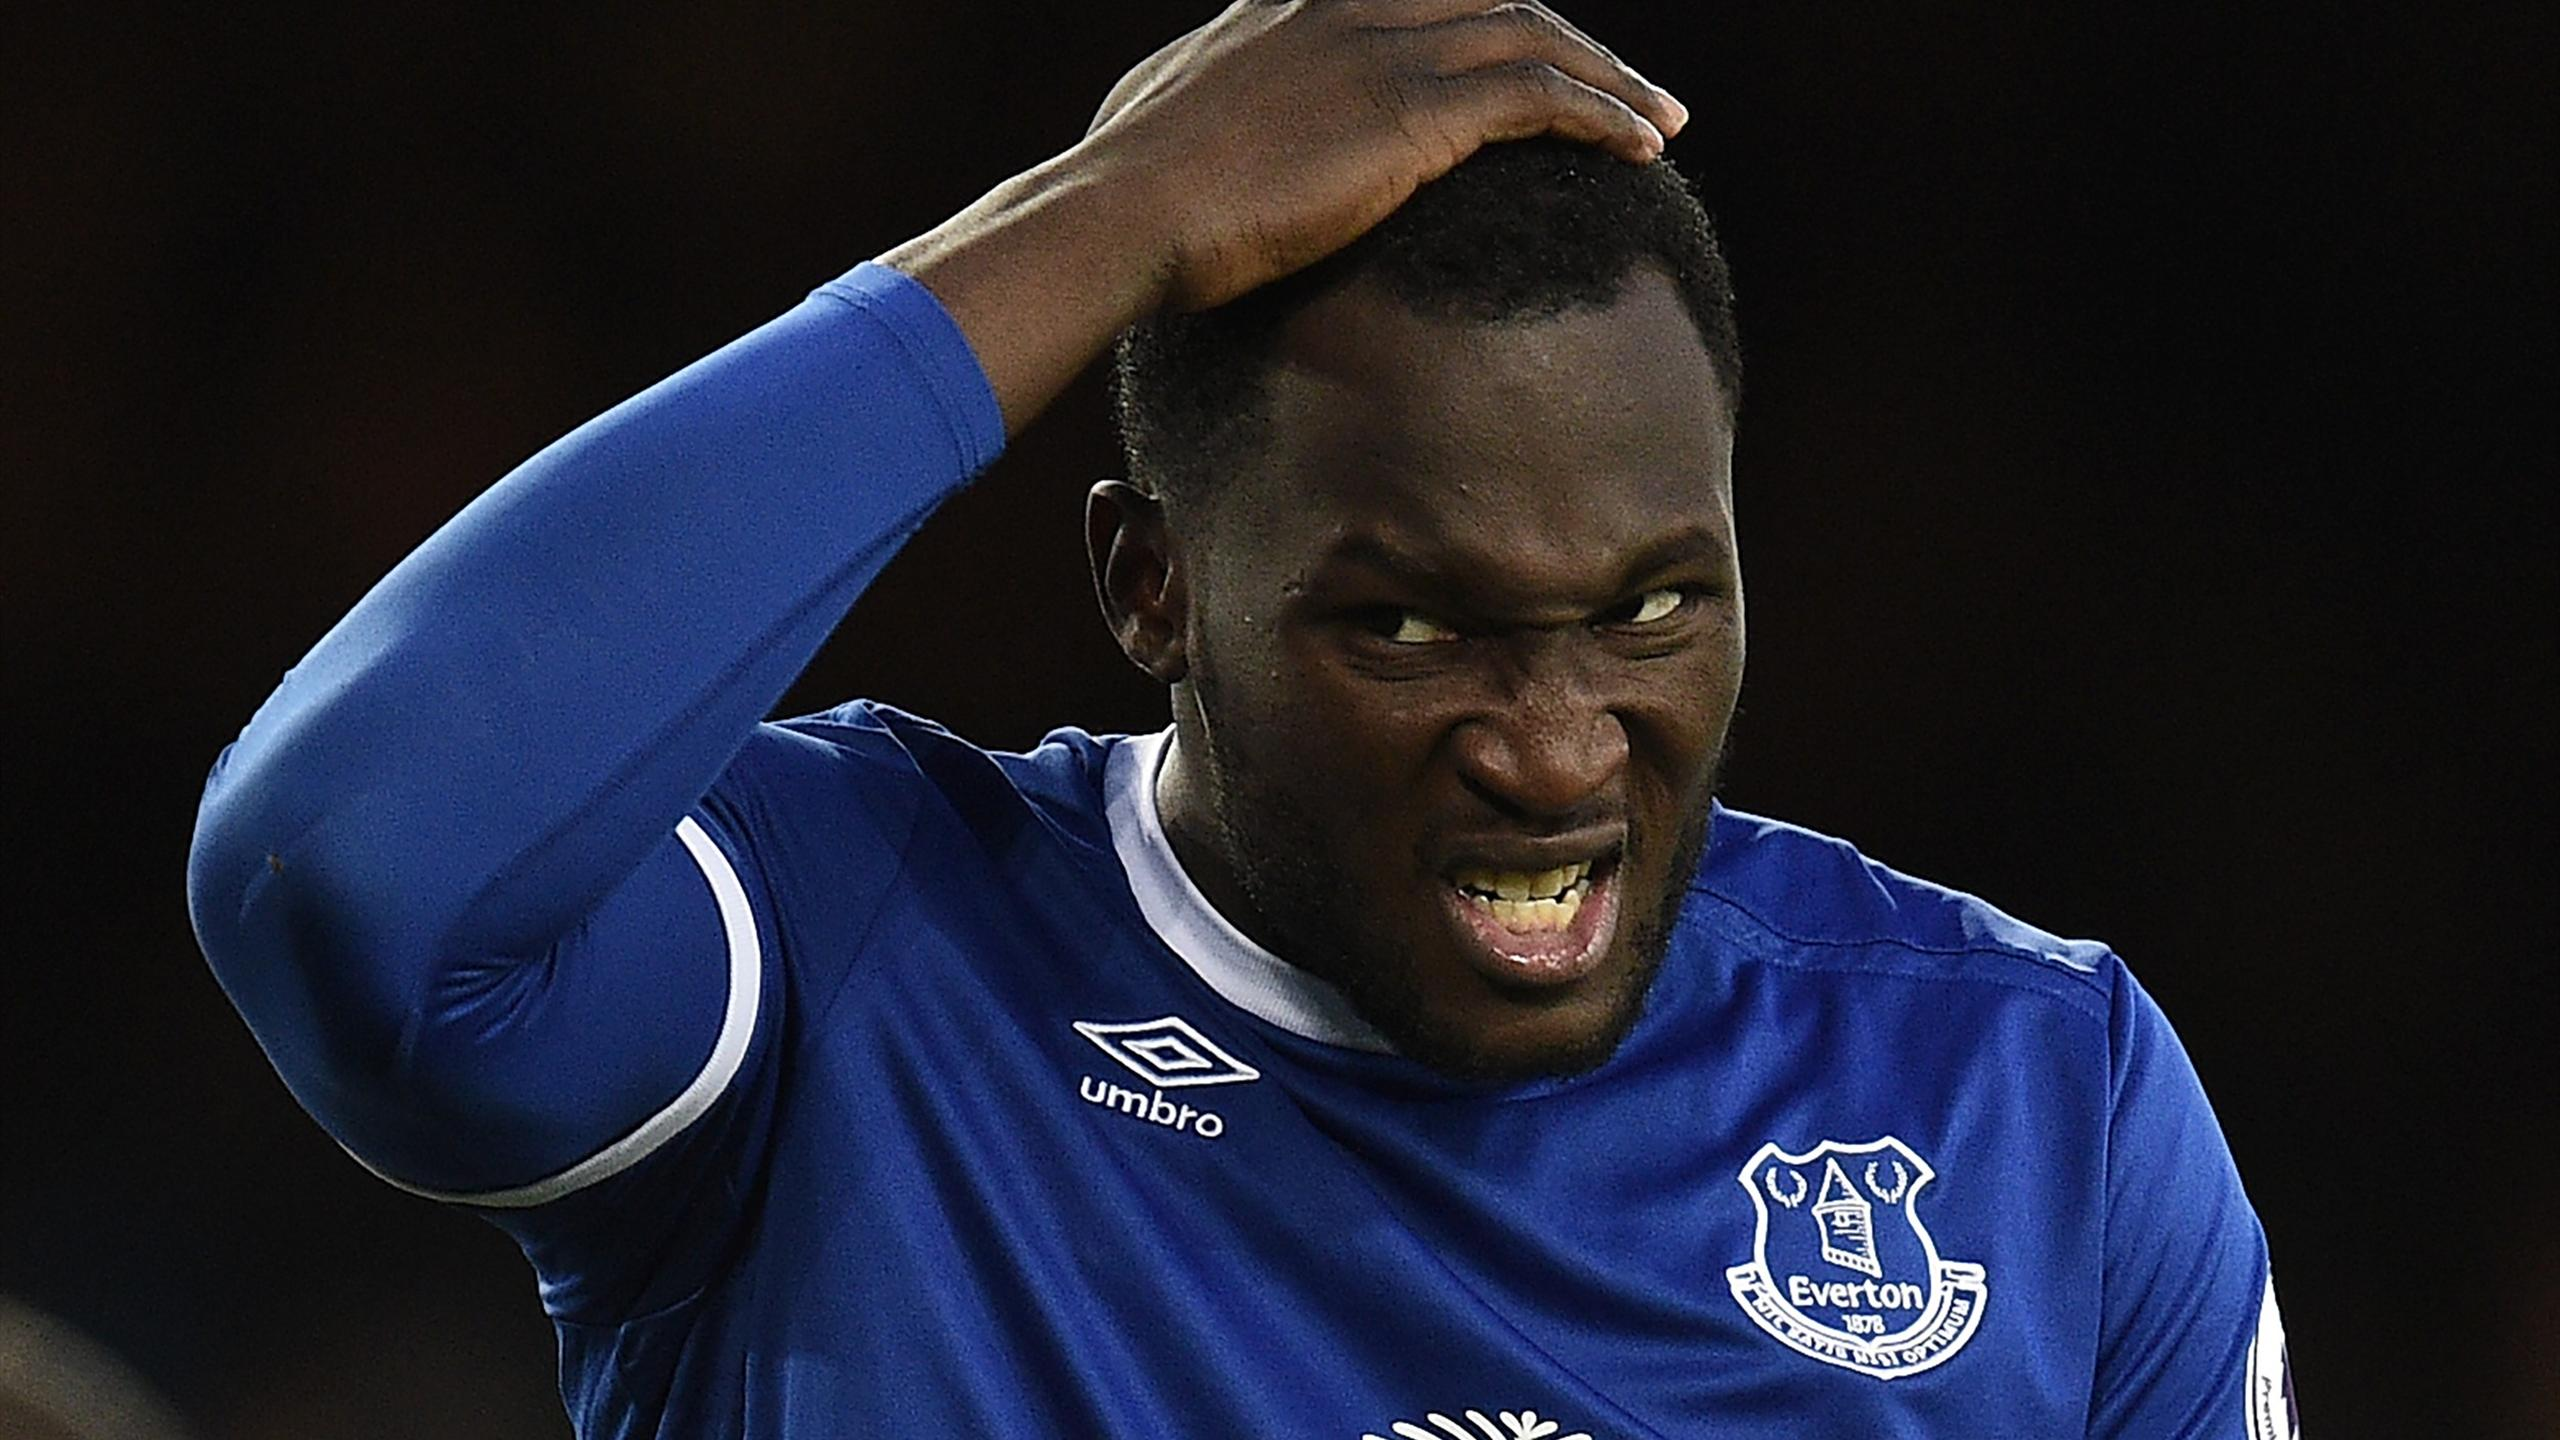 Everton's Belgian striker Romelu Lukaku reacts after missing a chance to score